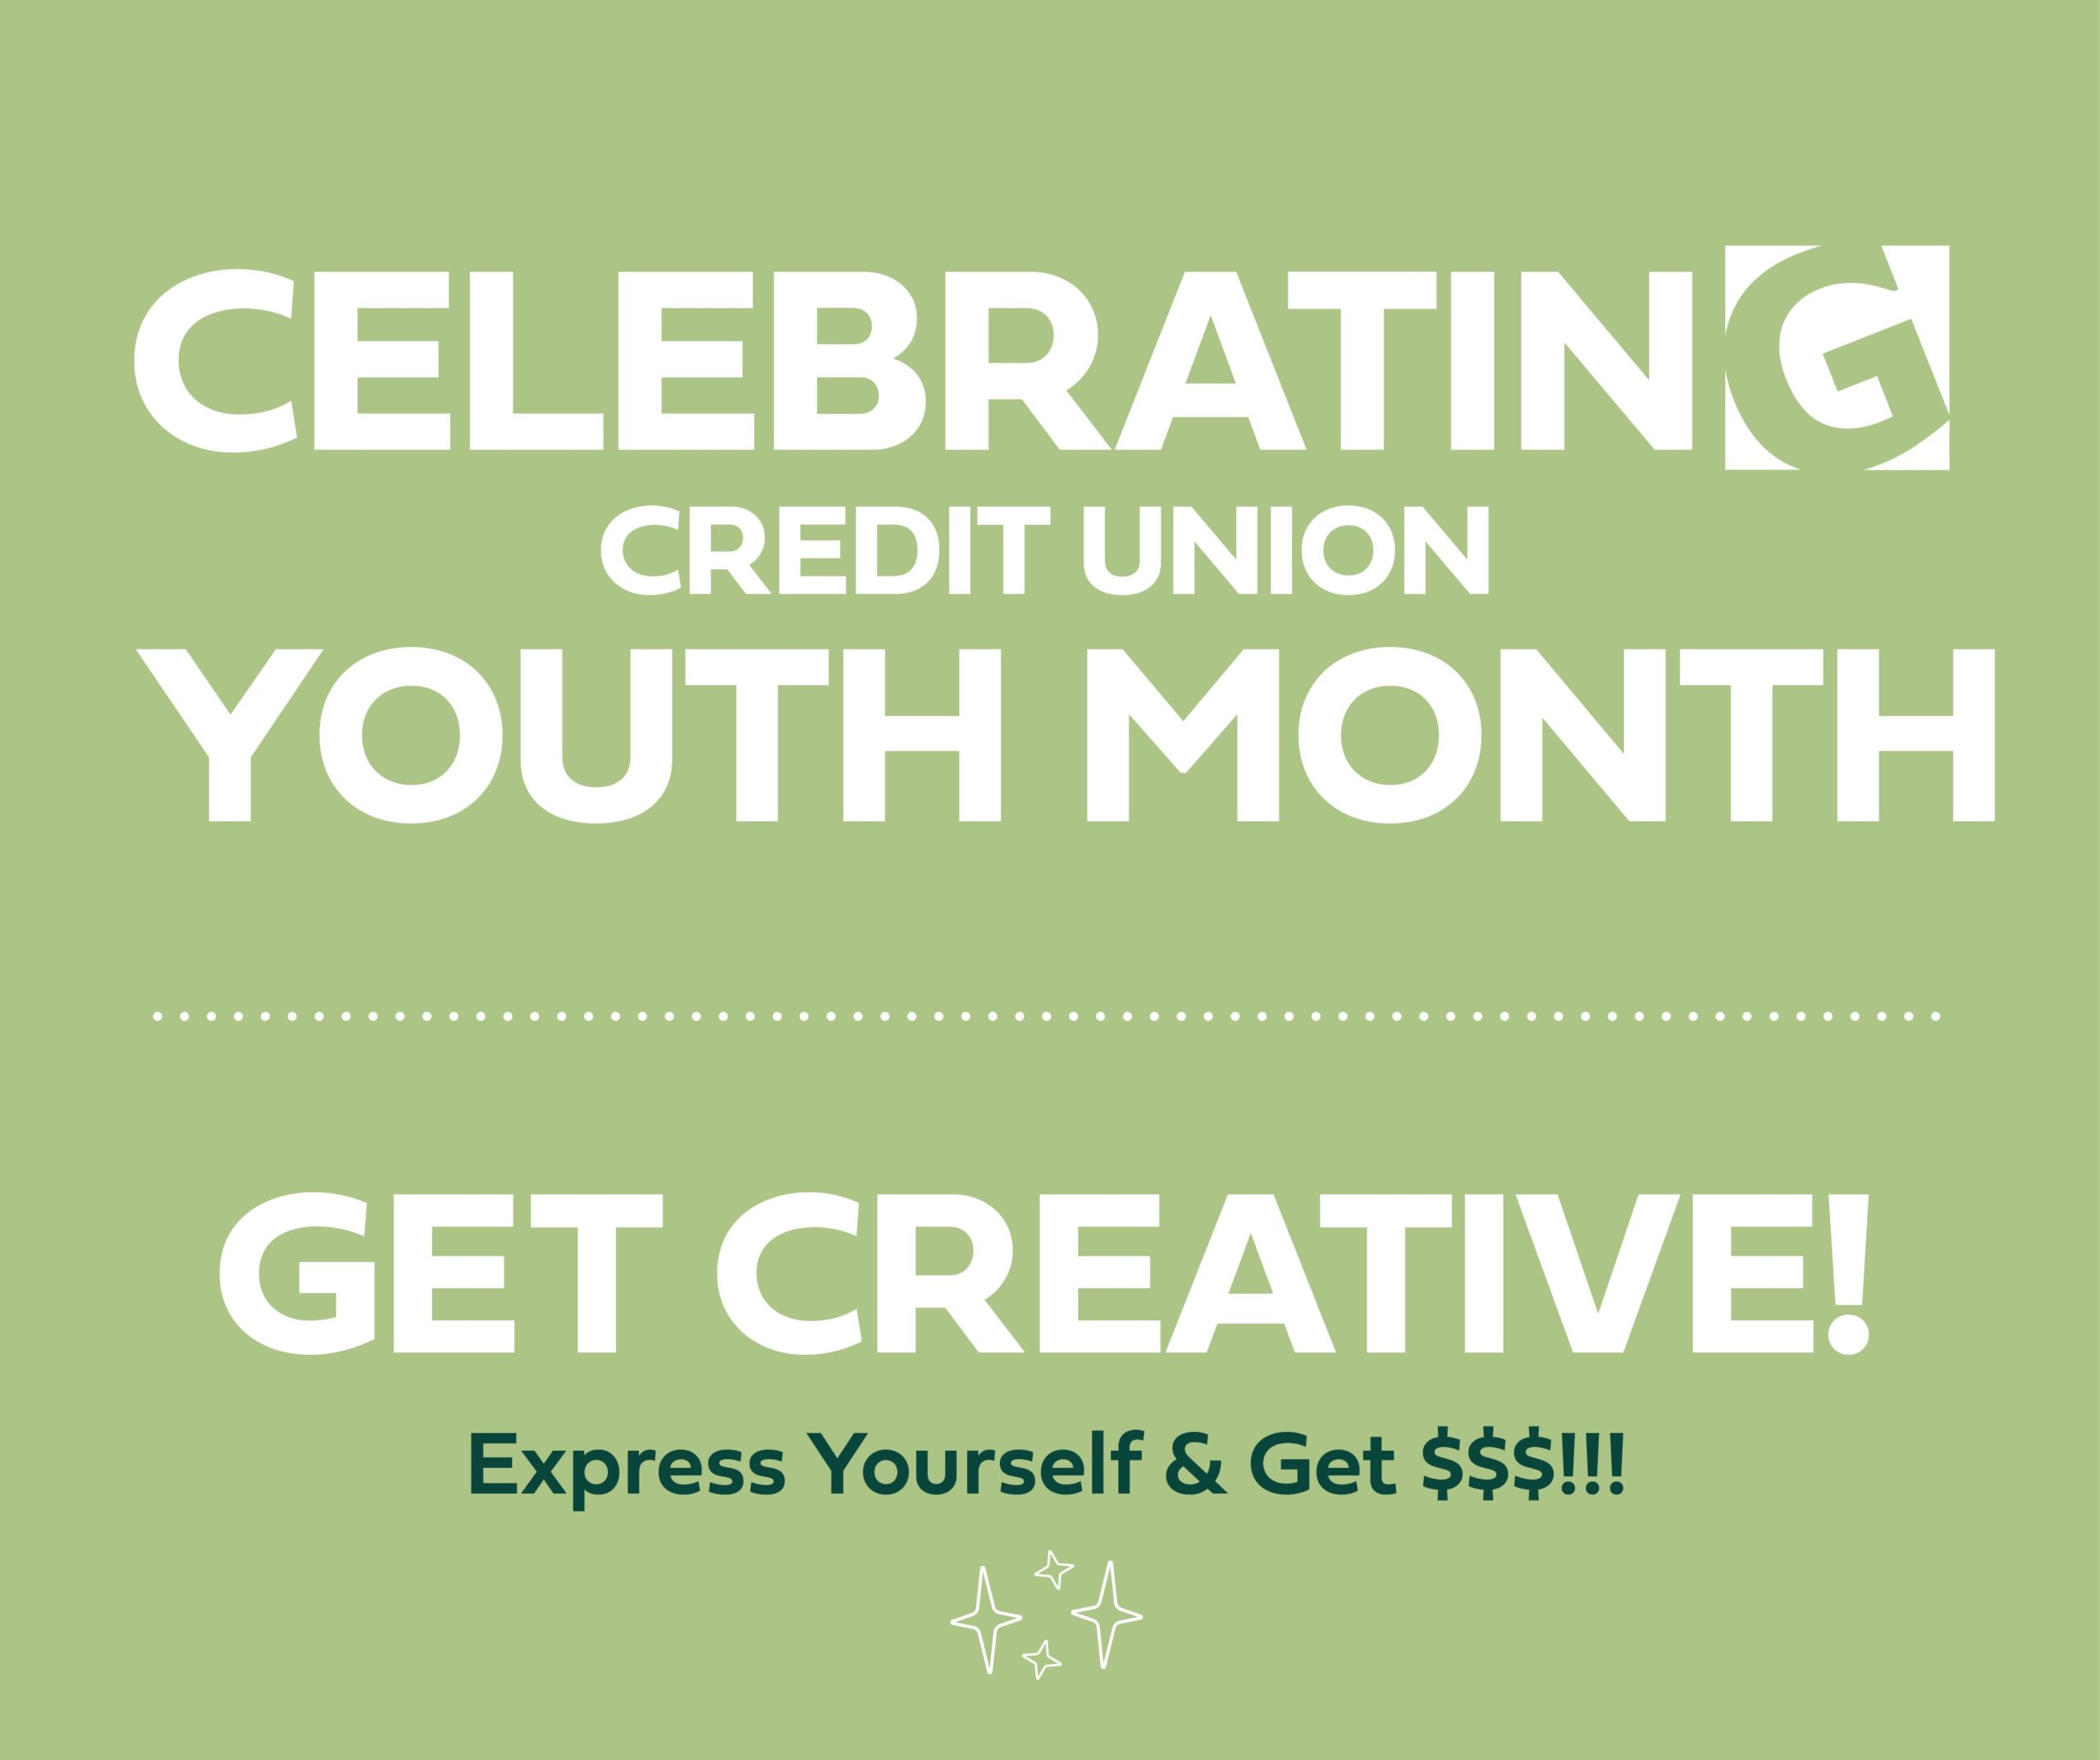 Celebrate Credit Union Youth Month with Youth Contests!